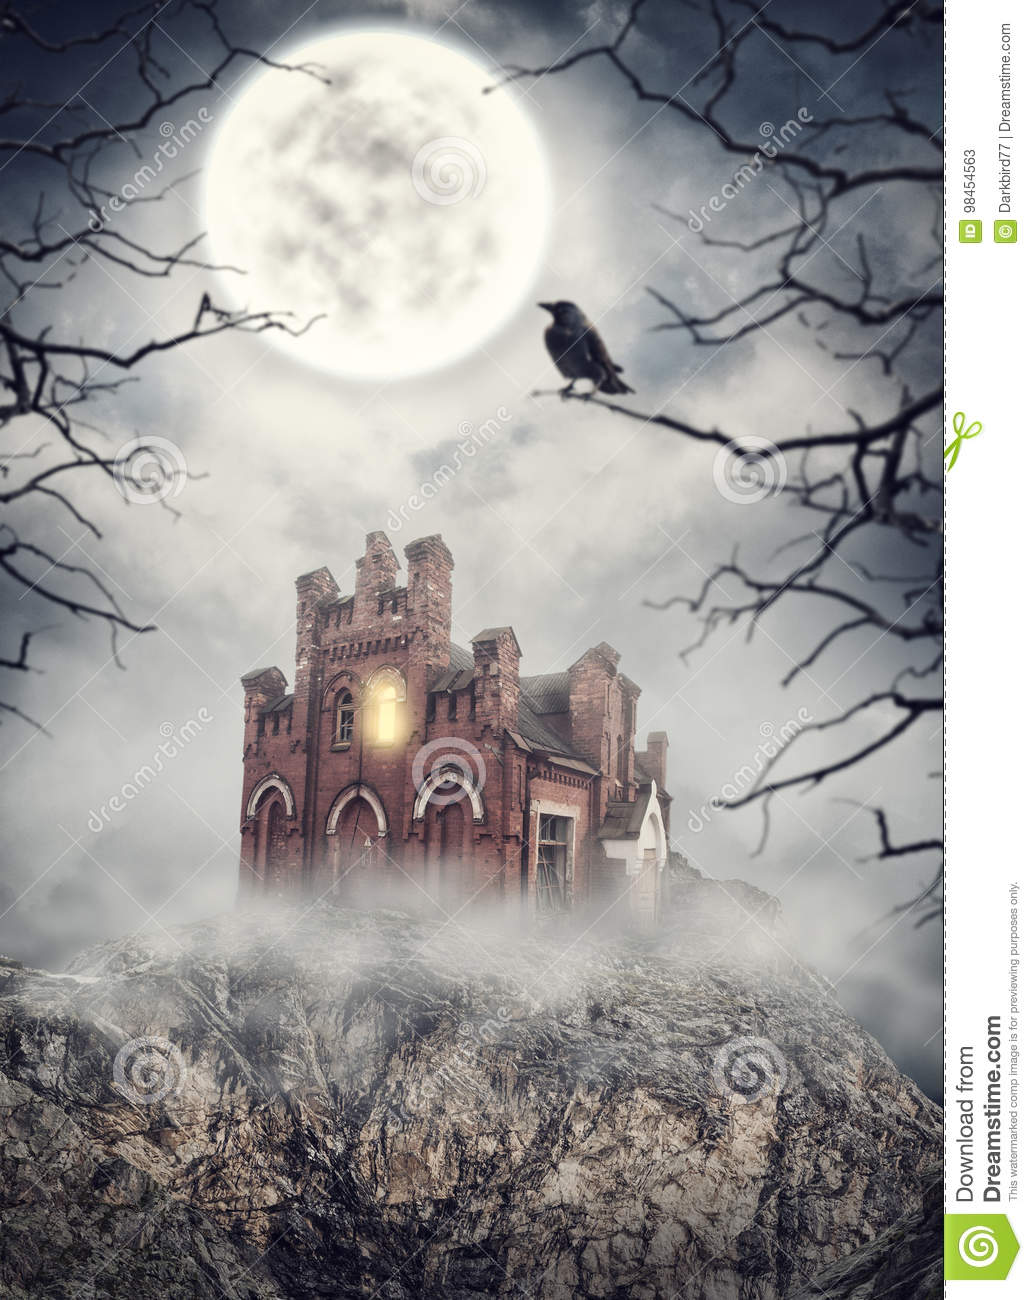 haunted abandoned house on the rock. halloween scene stock image